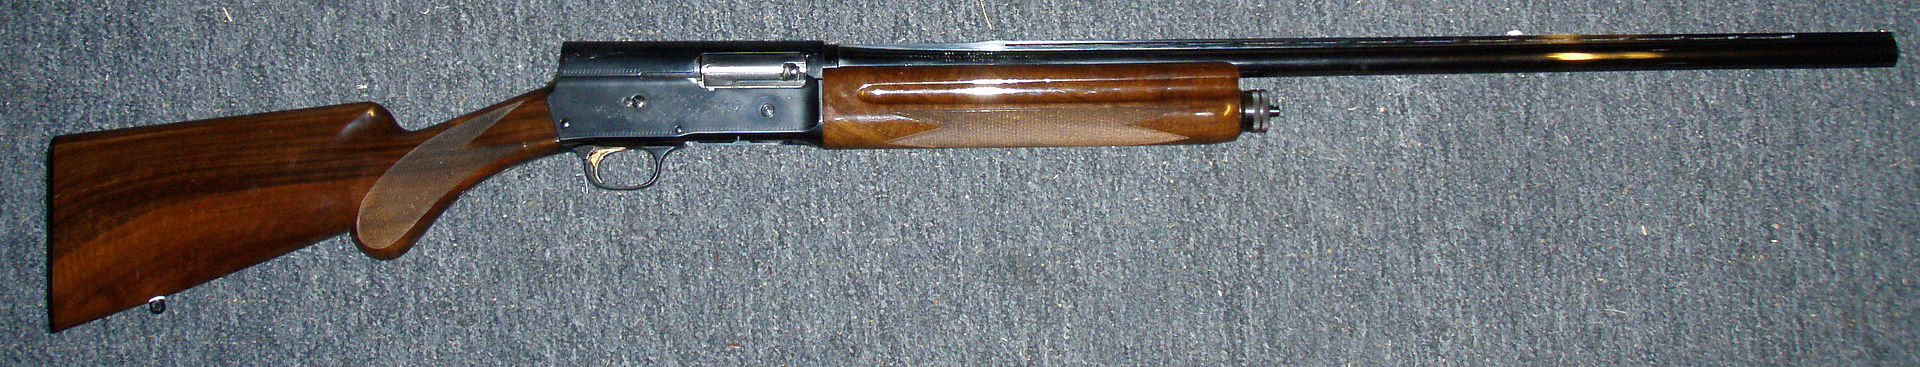 1920px-Browning_Auto-5_20g_Mag.jpg